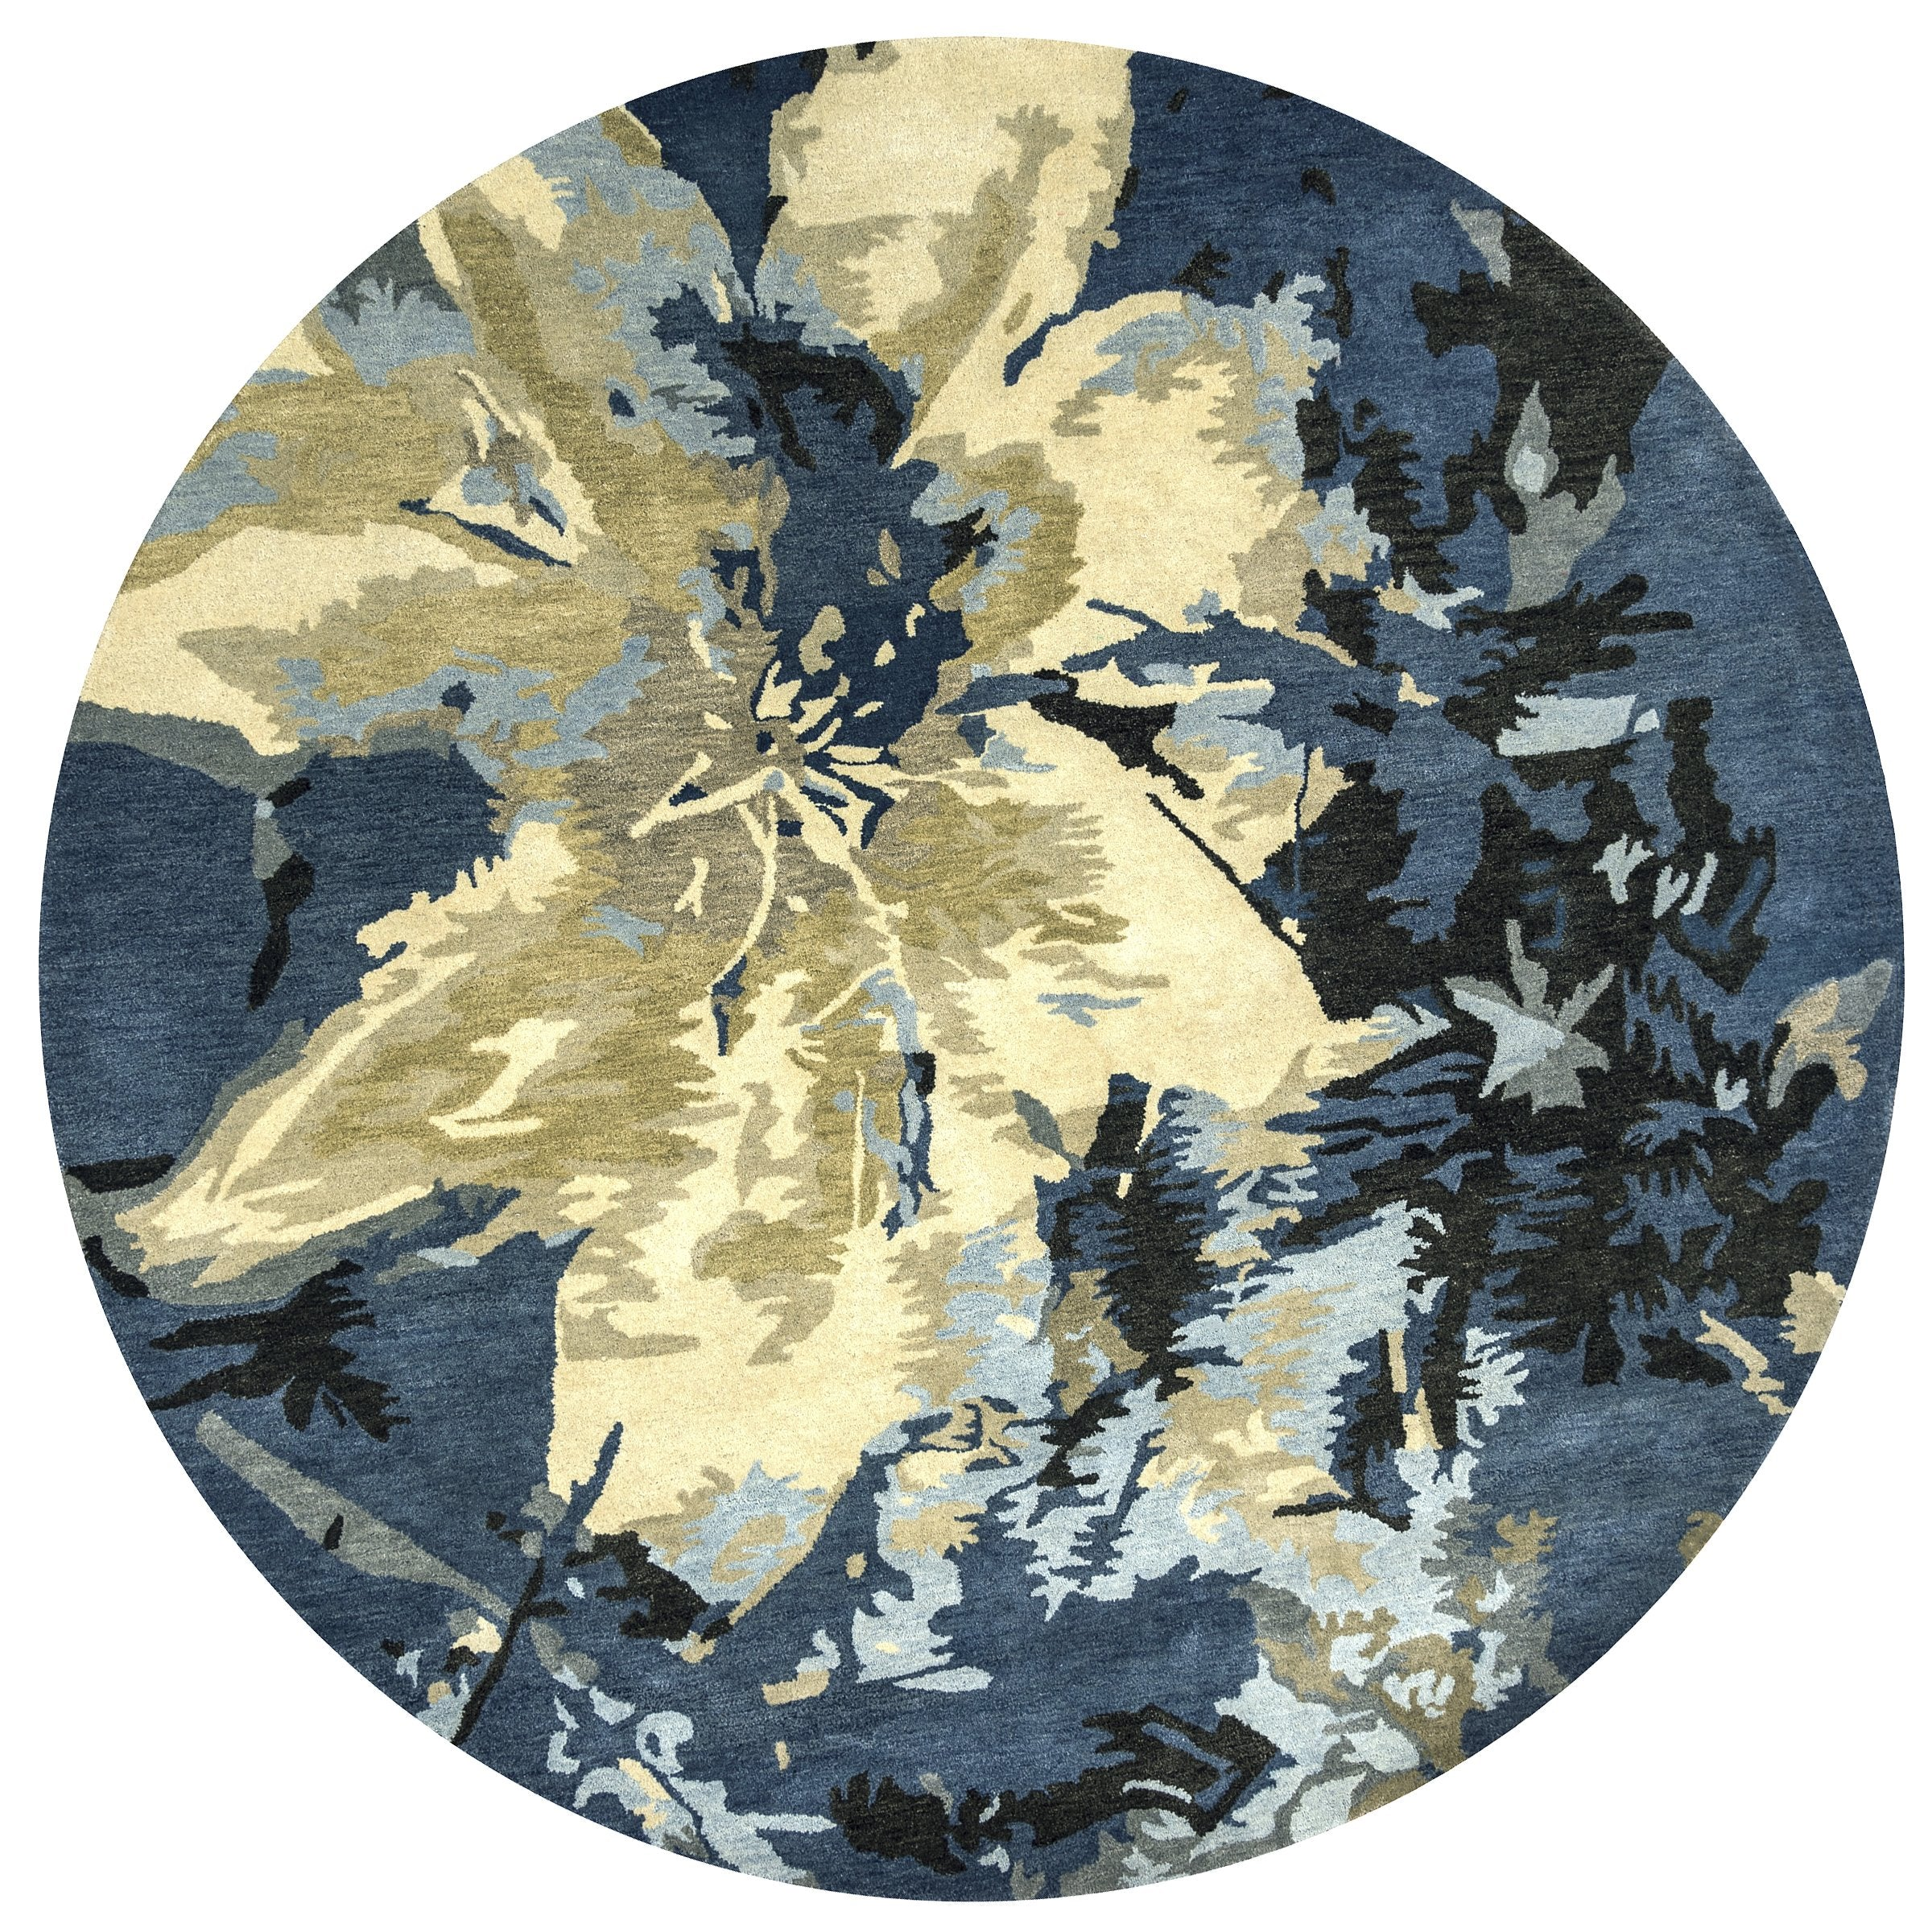 Woolrich Blue And White Floral Rug: Rizzy Home Highland HD2840 Navy/Blue Floral Area Rug